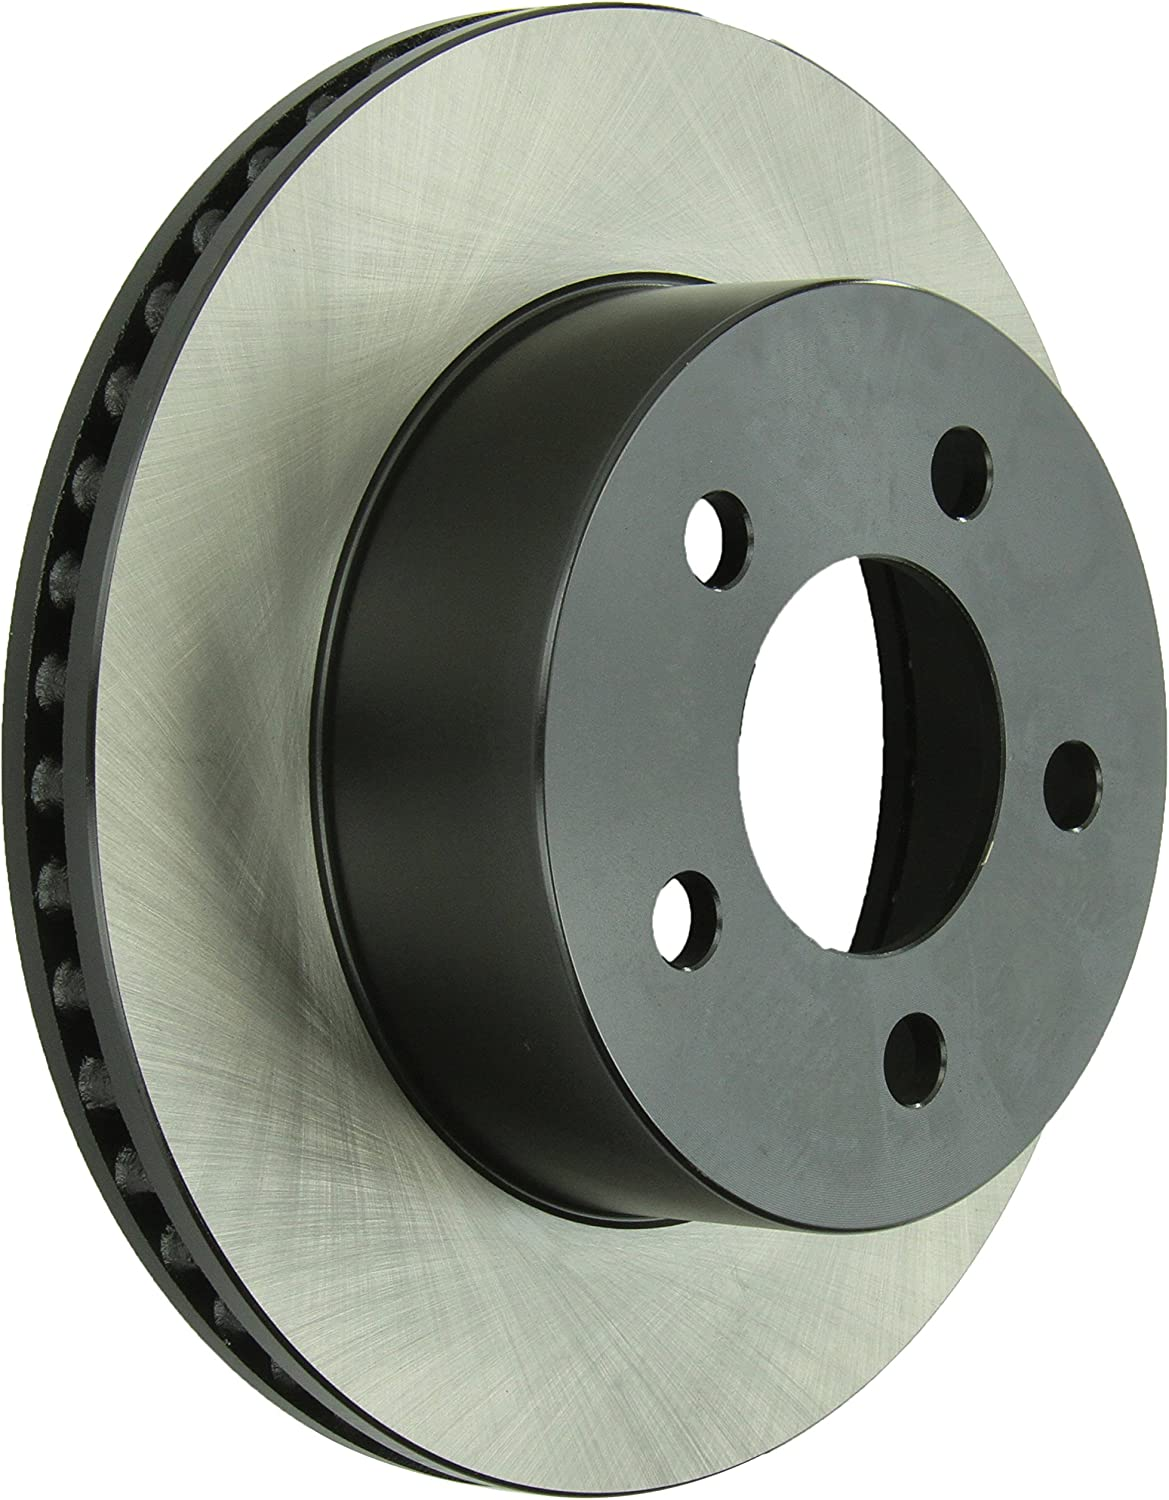 Centric Parts 120.67045 Premium Brake Rotor with E-Coating